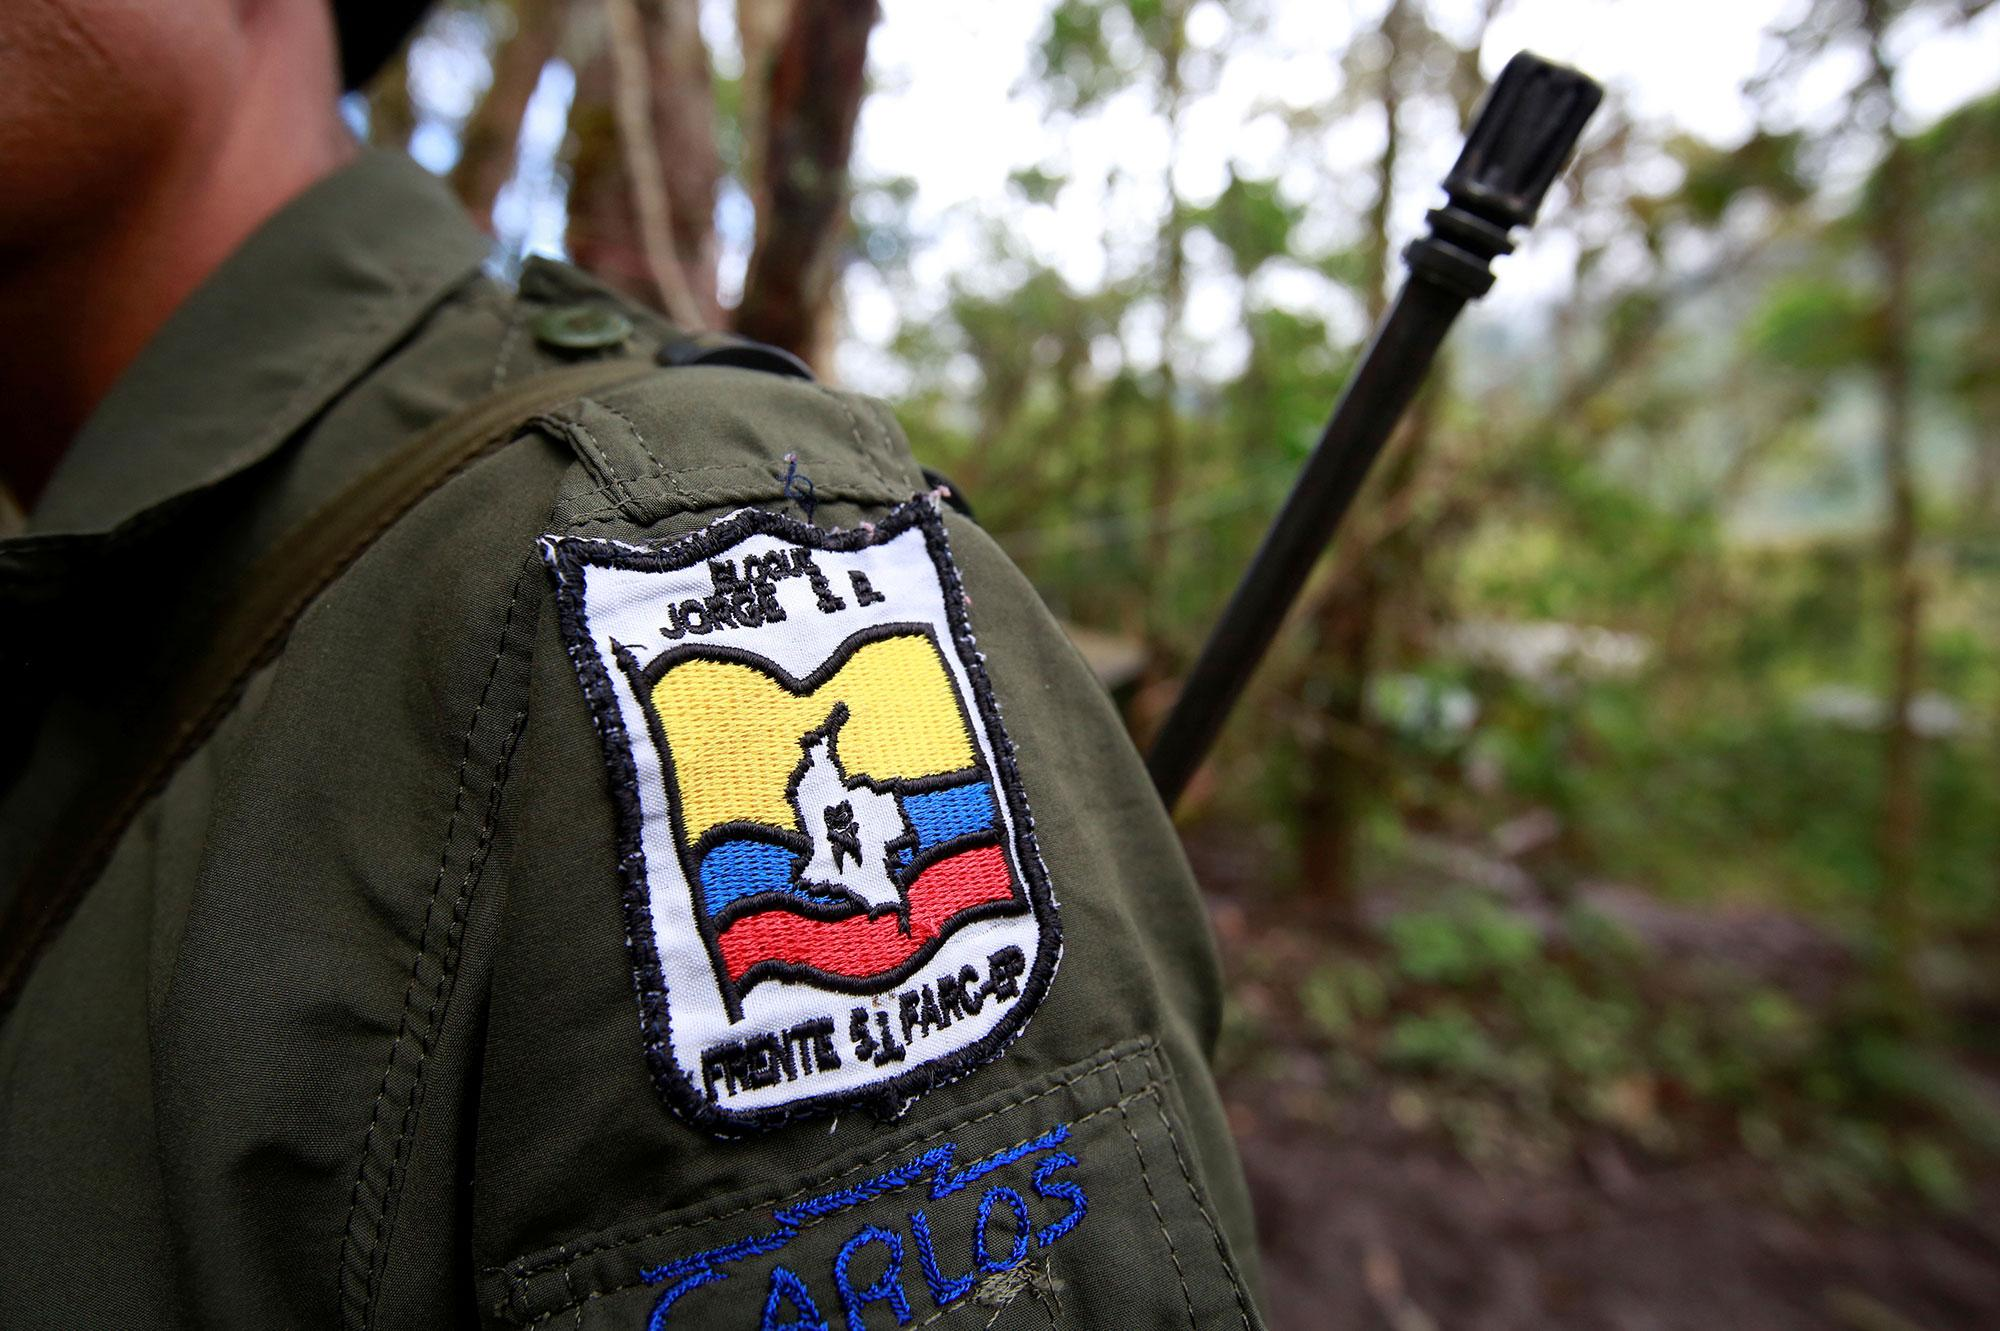 <p>Carlos, a member of the 51st Front of the Revolutionary Armed Forces of Colombia (FARC), is seen at a camp in Cordillera Oriental, Colombia, August 16, 2016. (John Vizcaino/Reuters) </p>